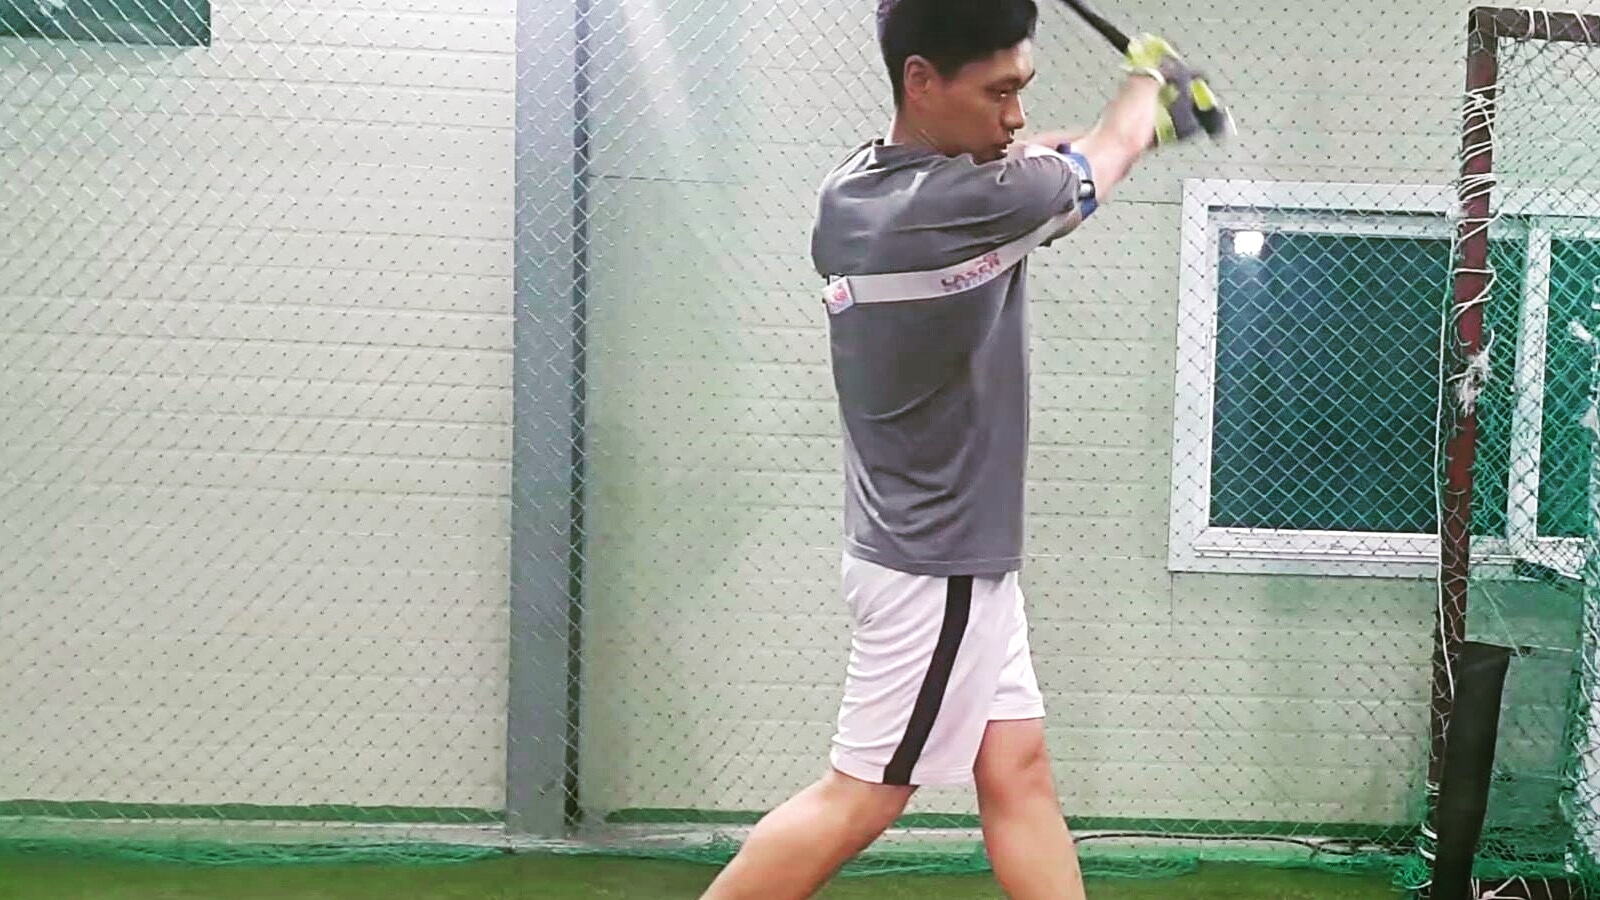 Muscle memory for bat speed, keeping your hands-inside-the-ball; during batting practice.